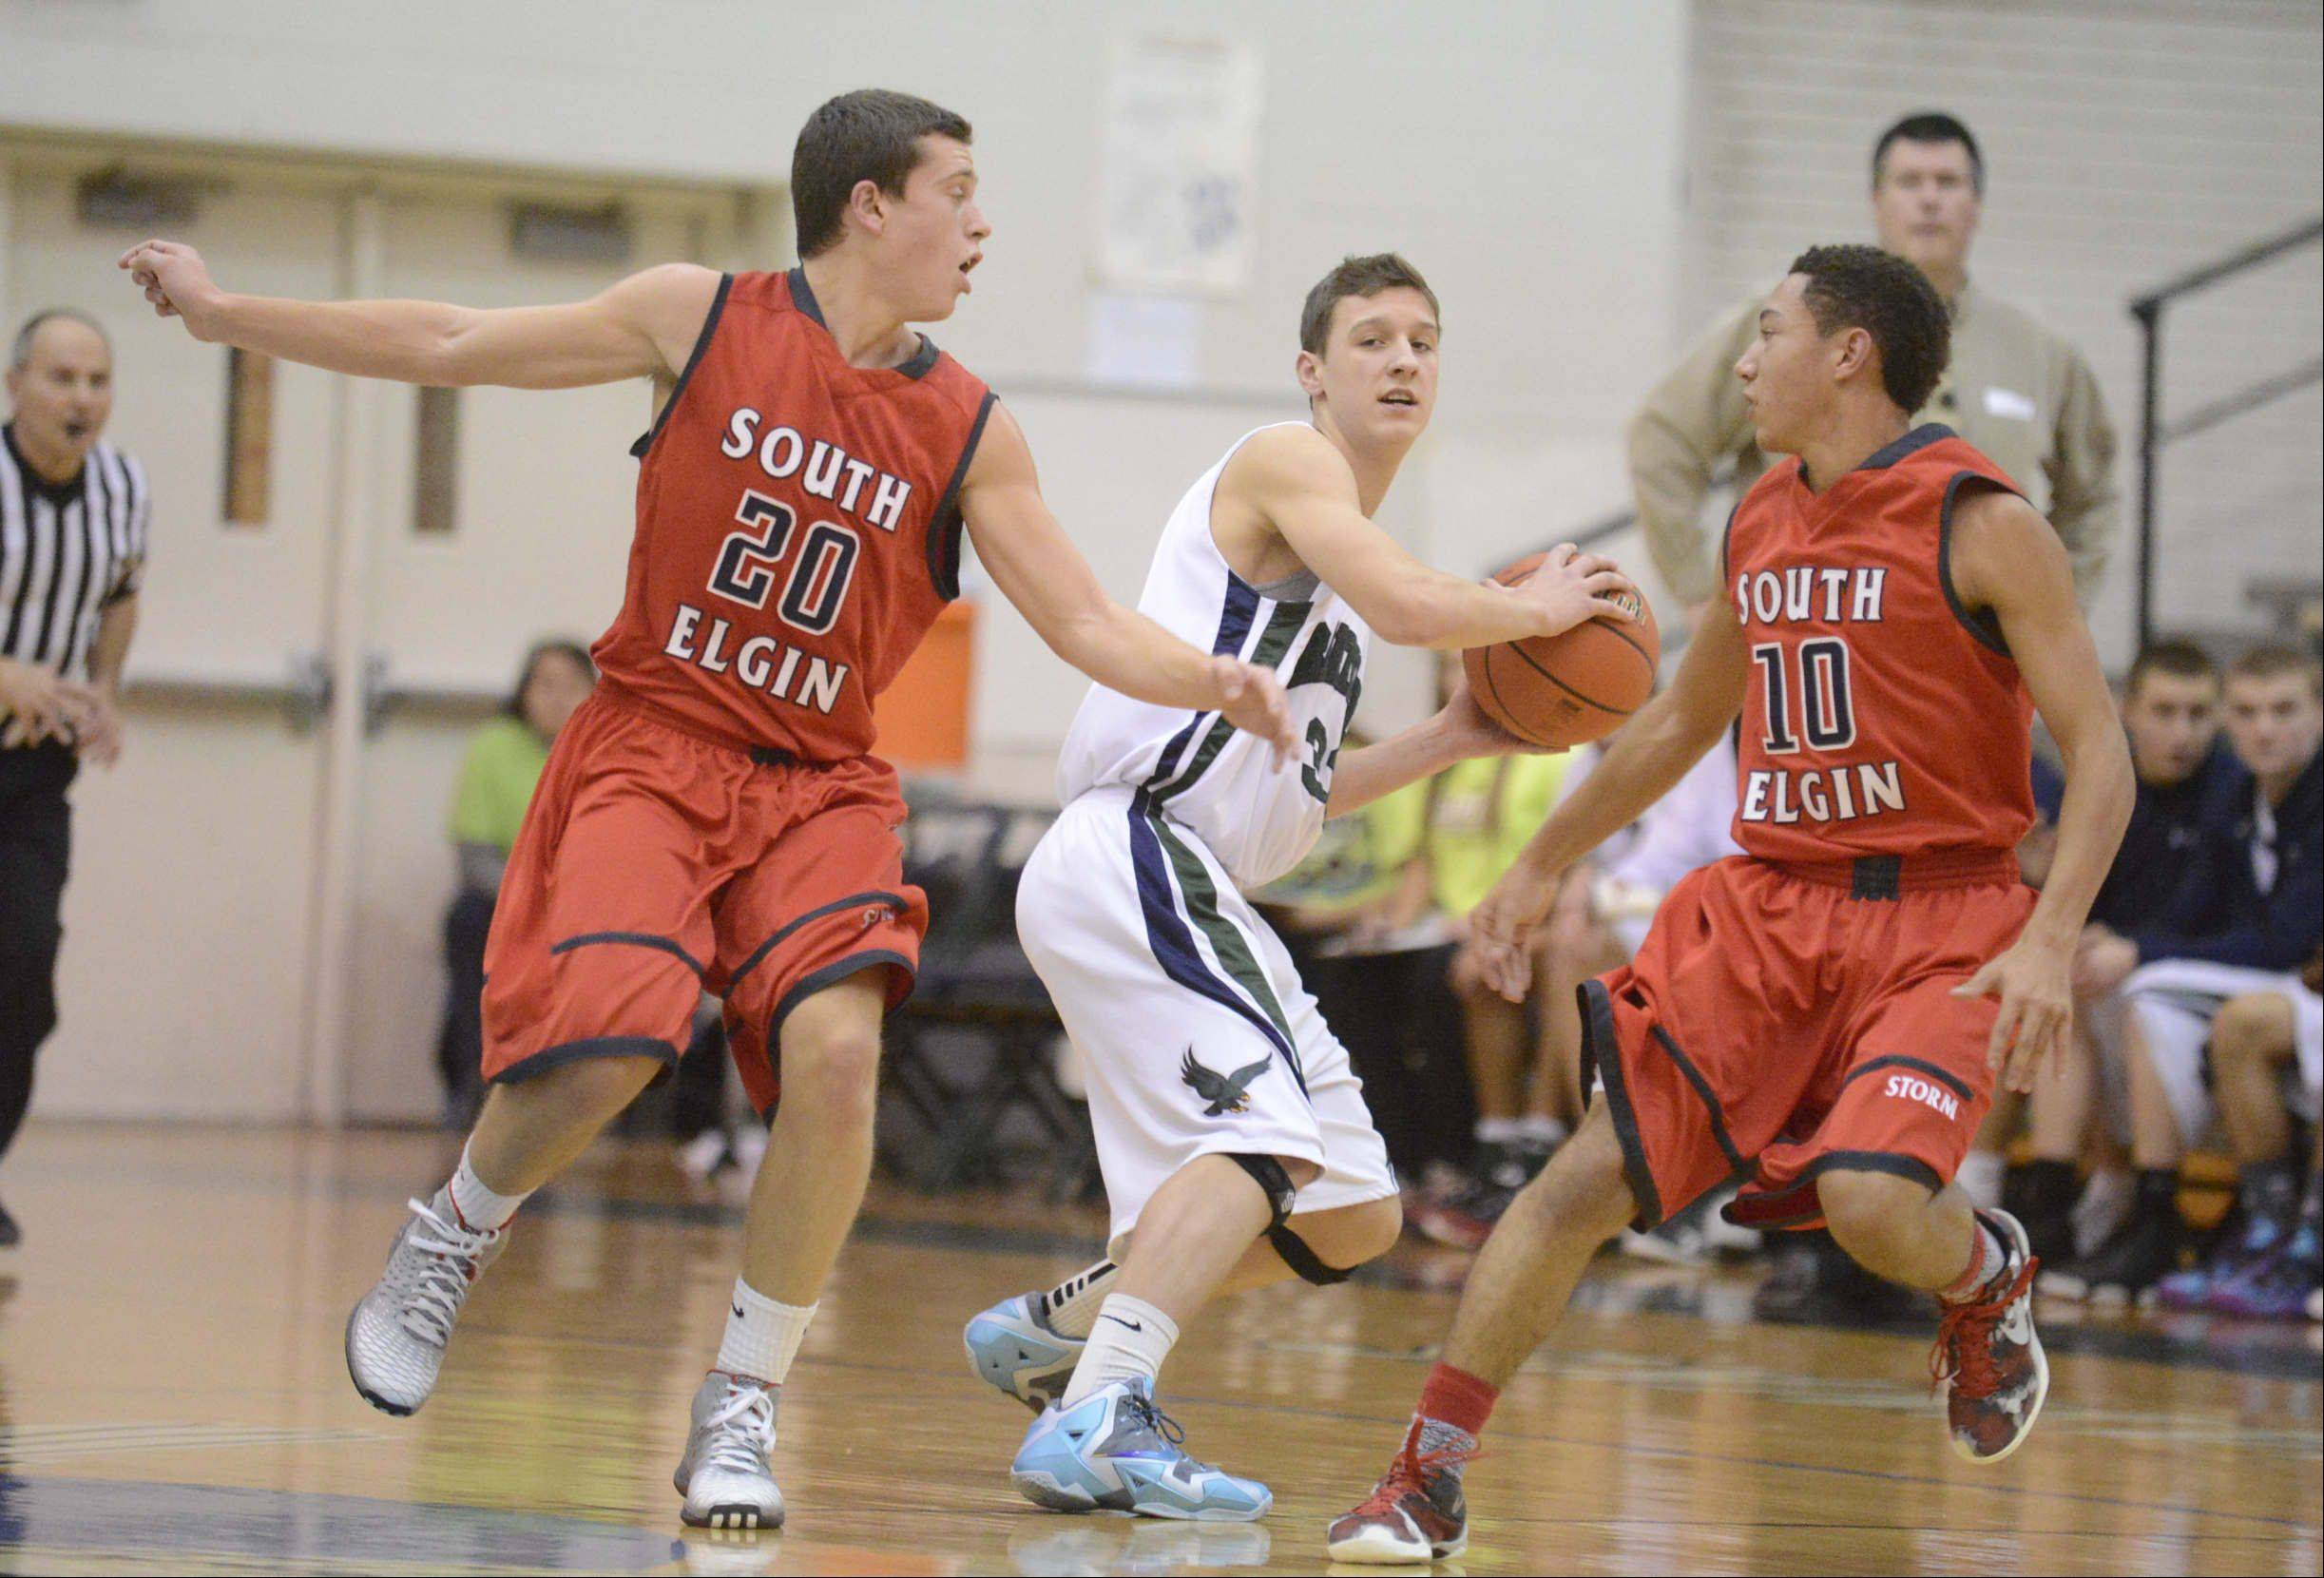 Images: South Elgin vs. Bartlett boys basketball